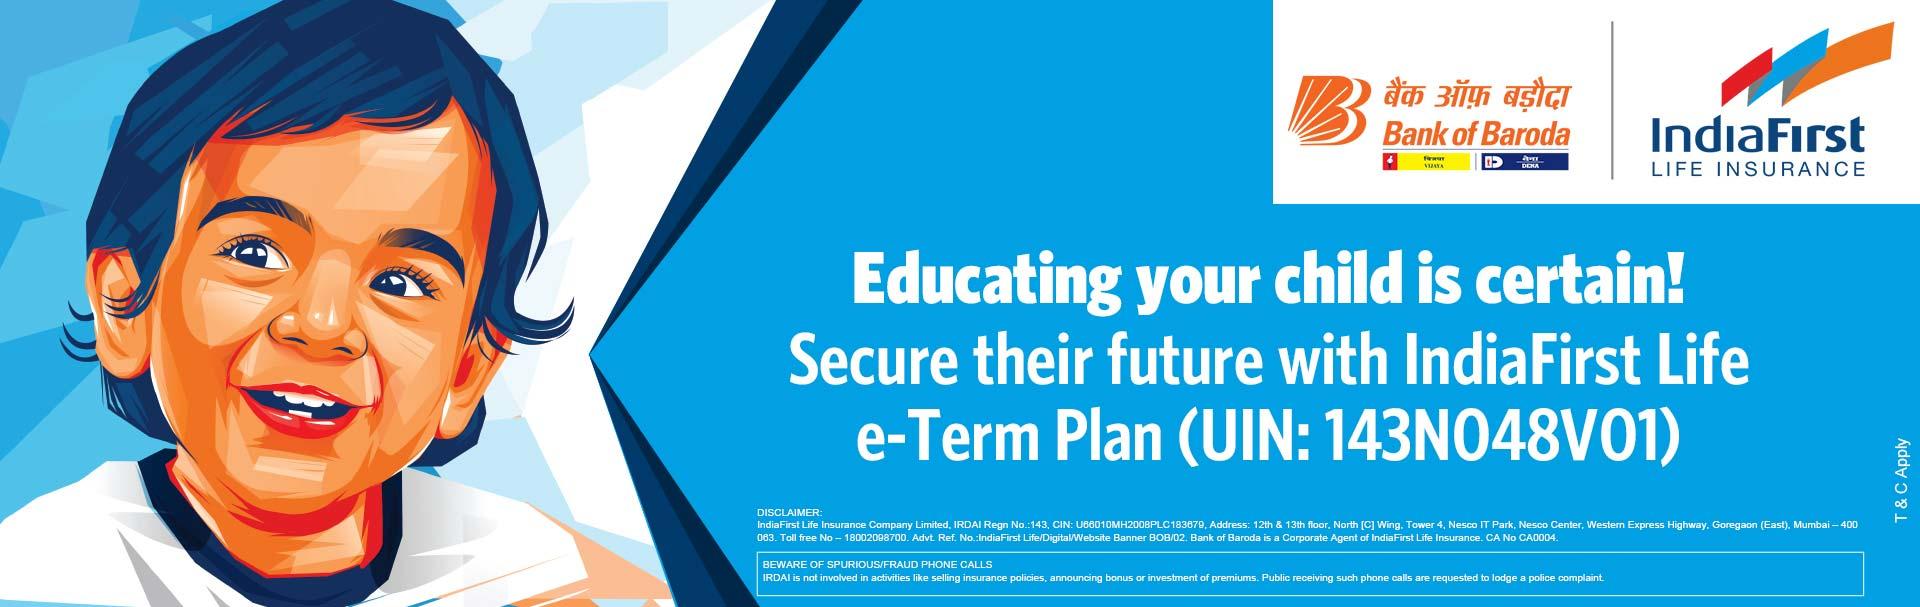 IndiaFirst Life Insurance Company Limited Education E-Term Plan